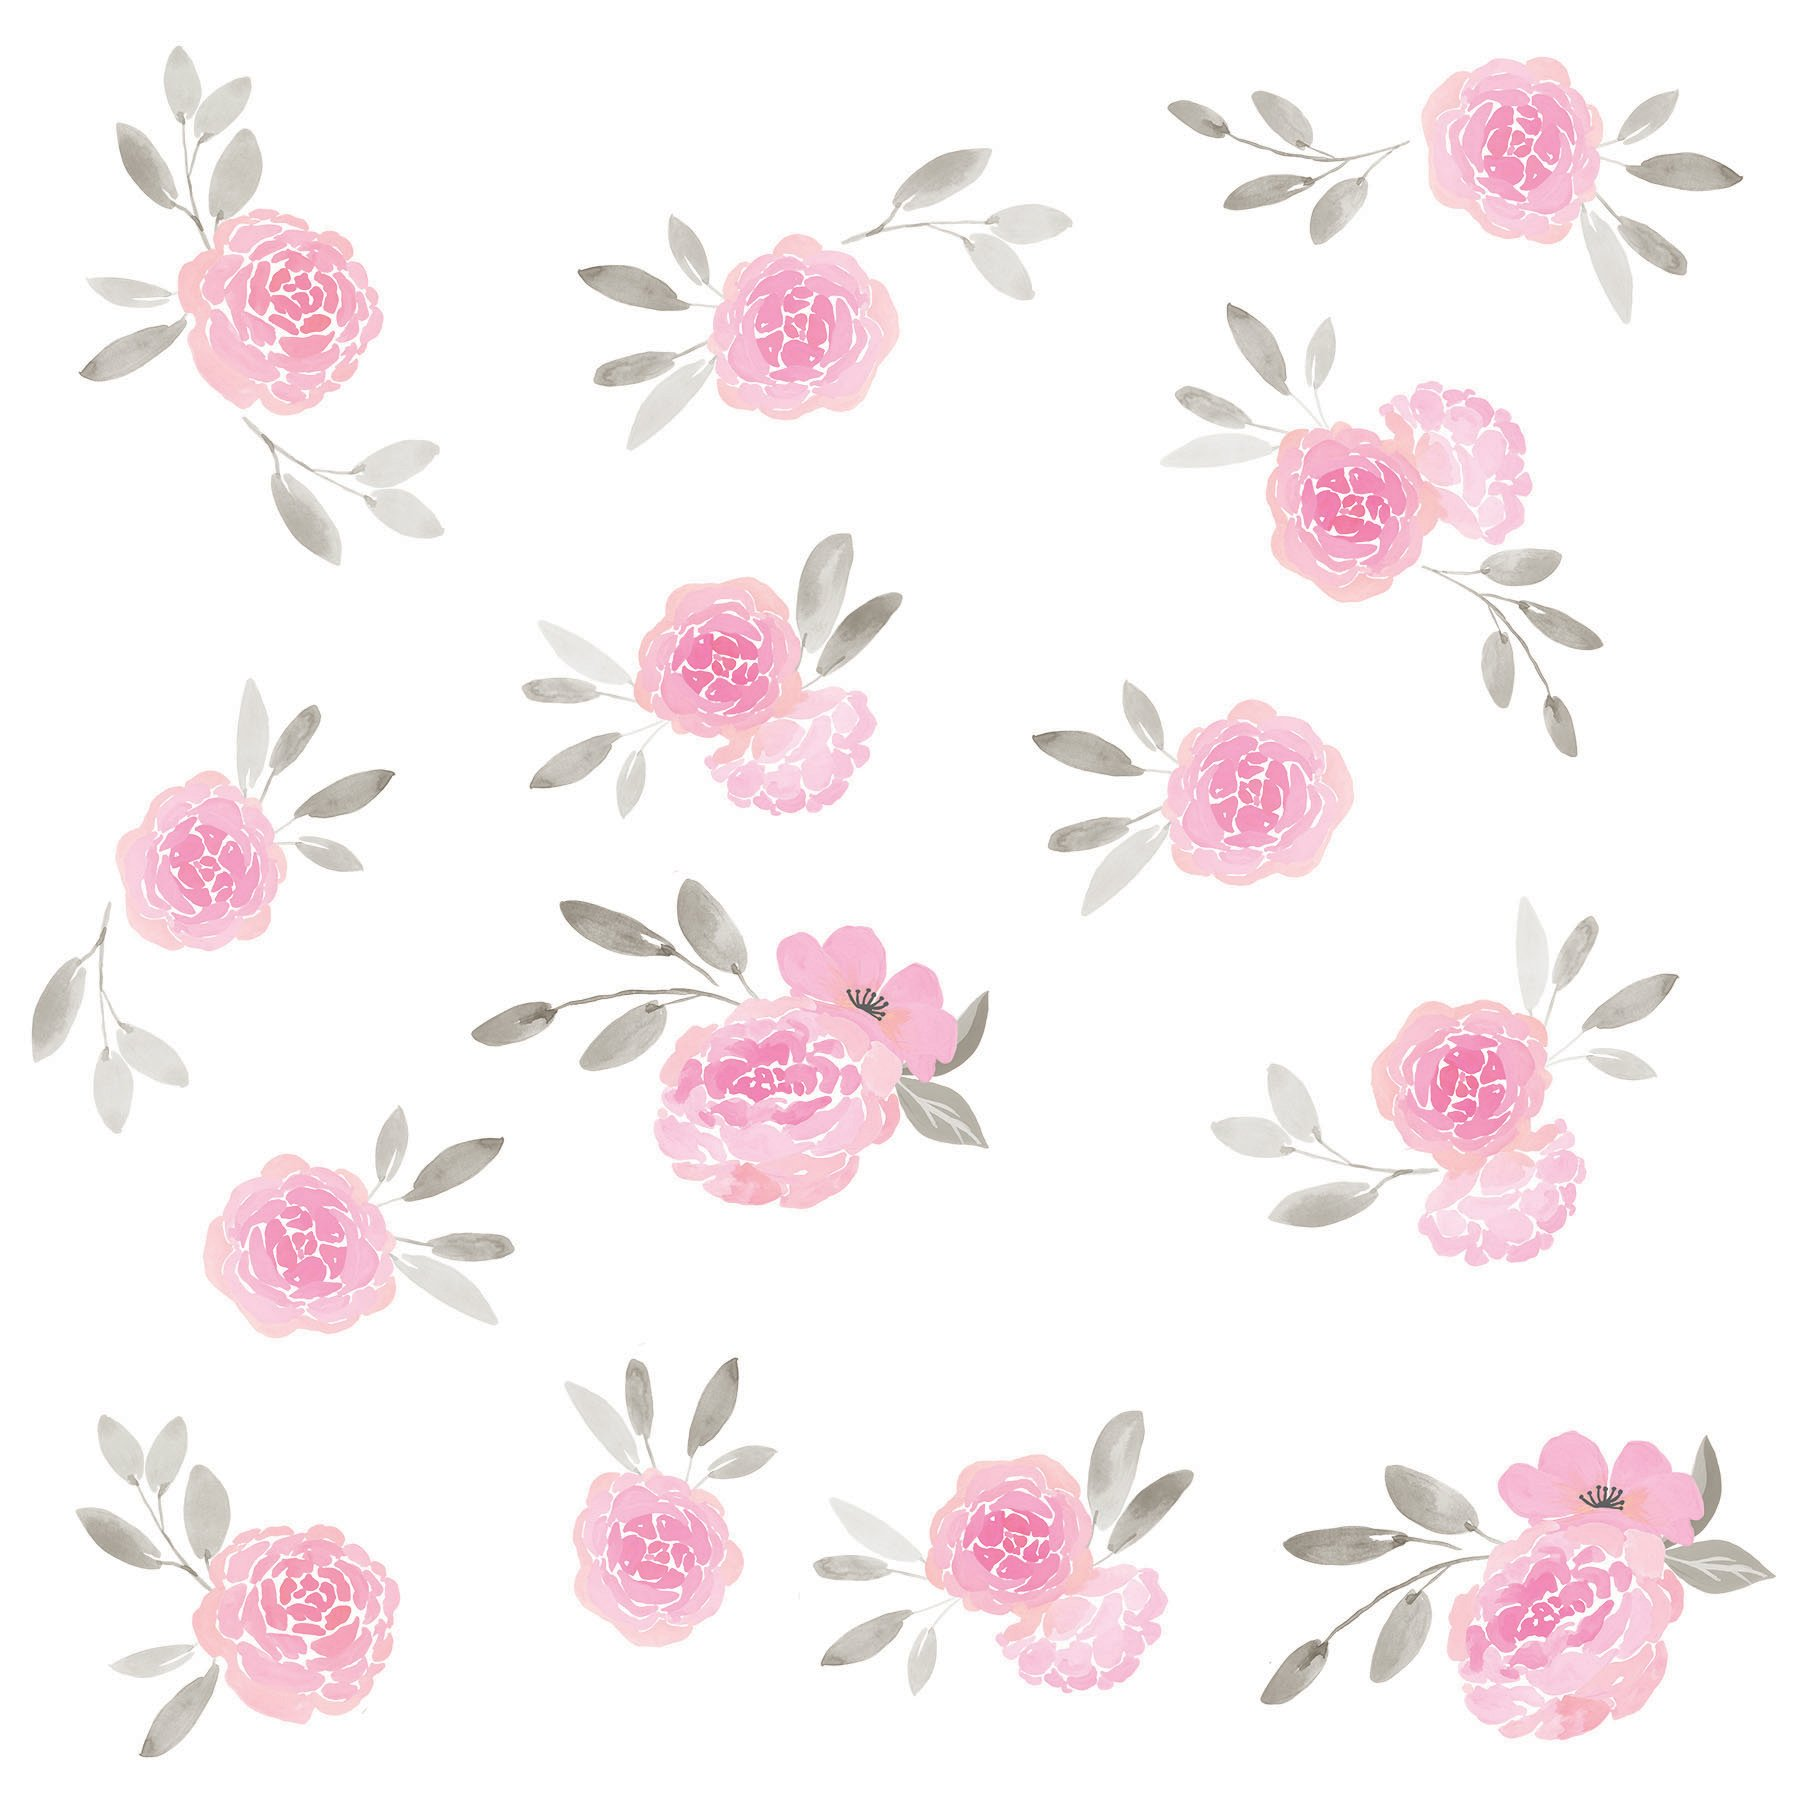 WallPops WPK2458 May Flowers Wall Art Kit, Pink by Wall Pops